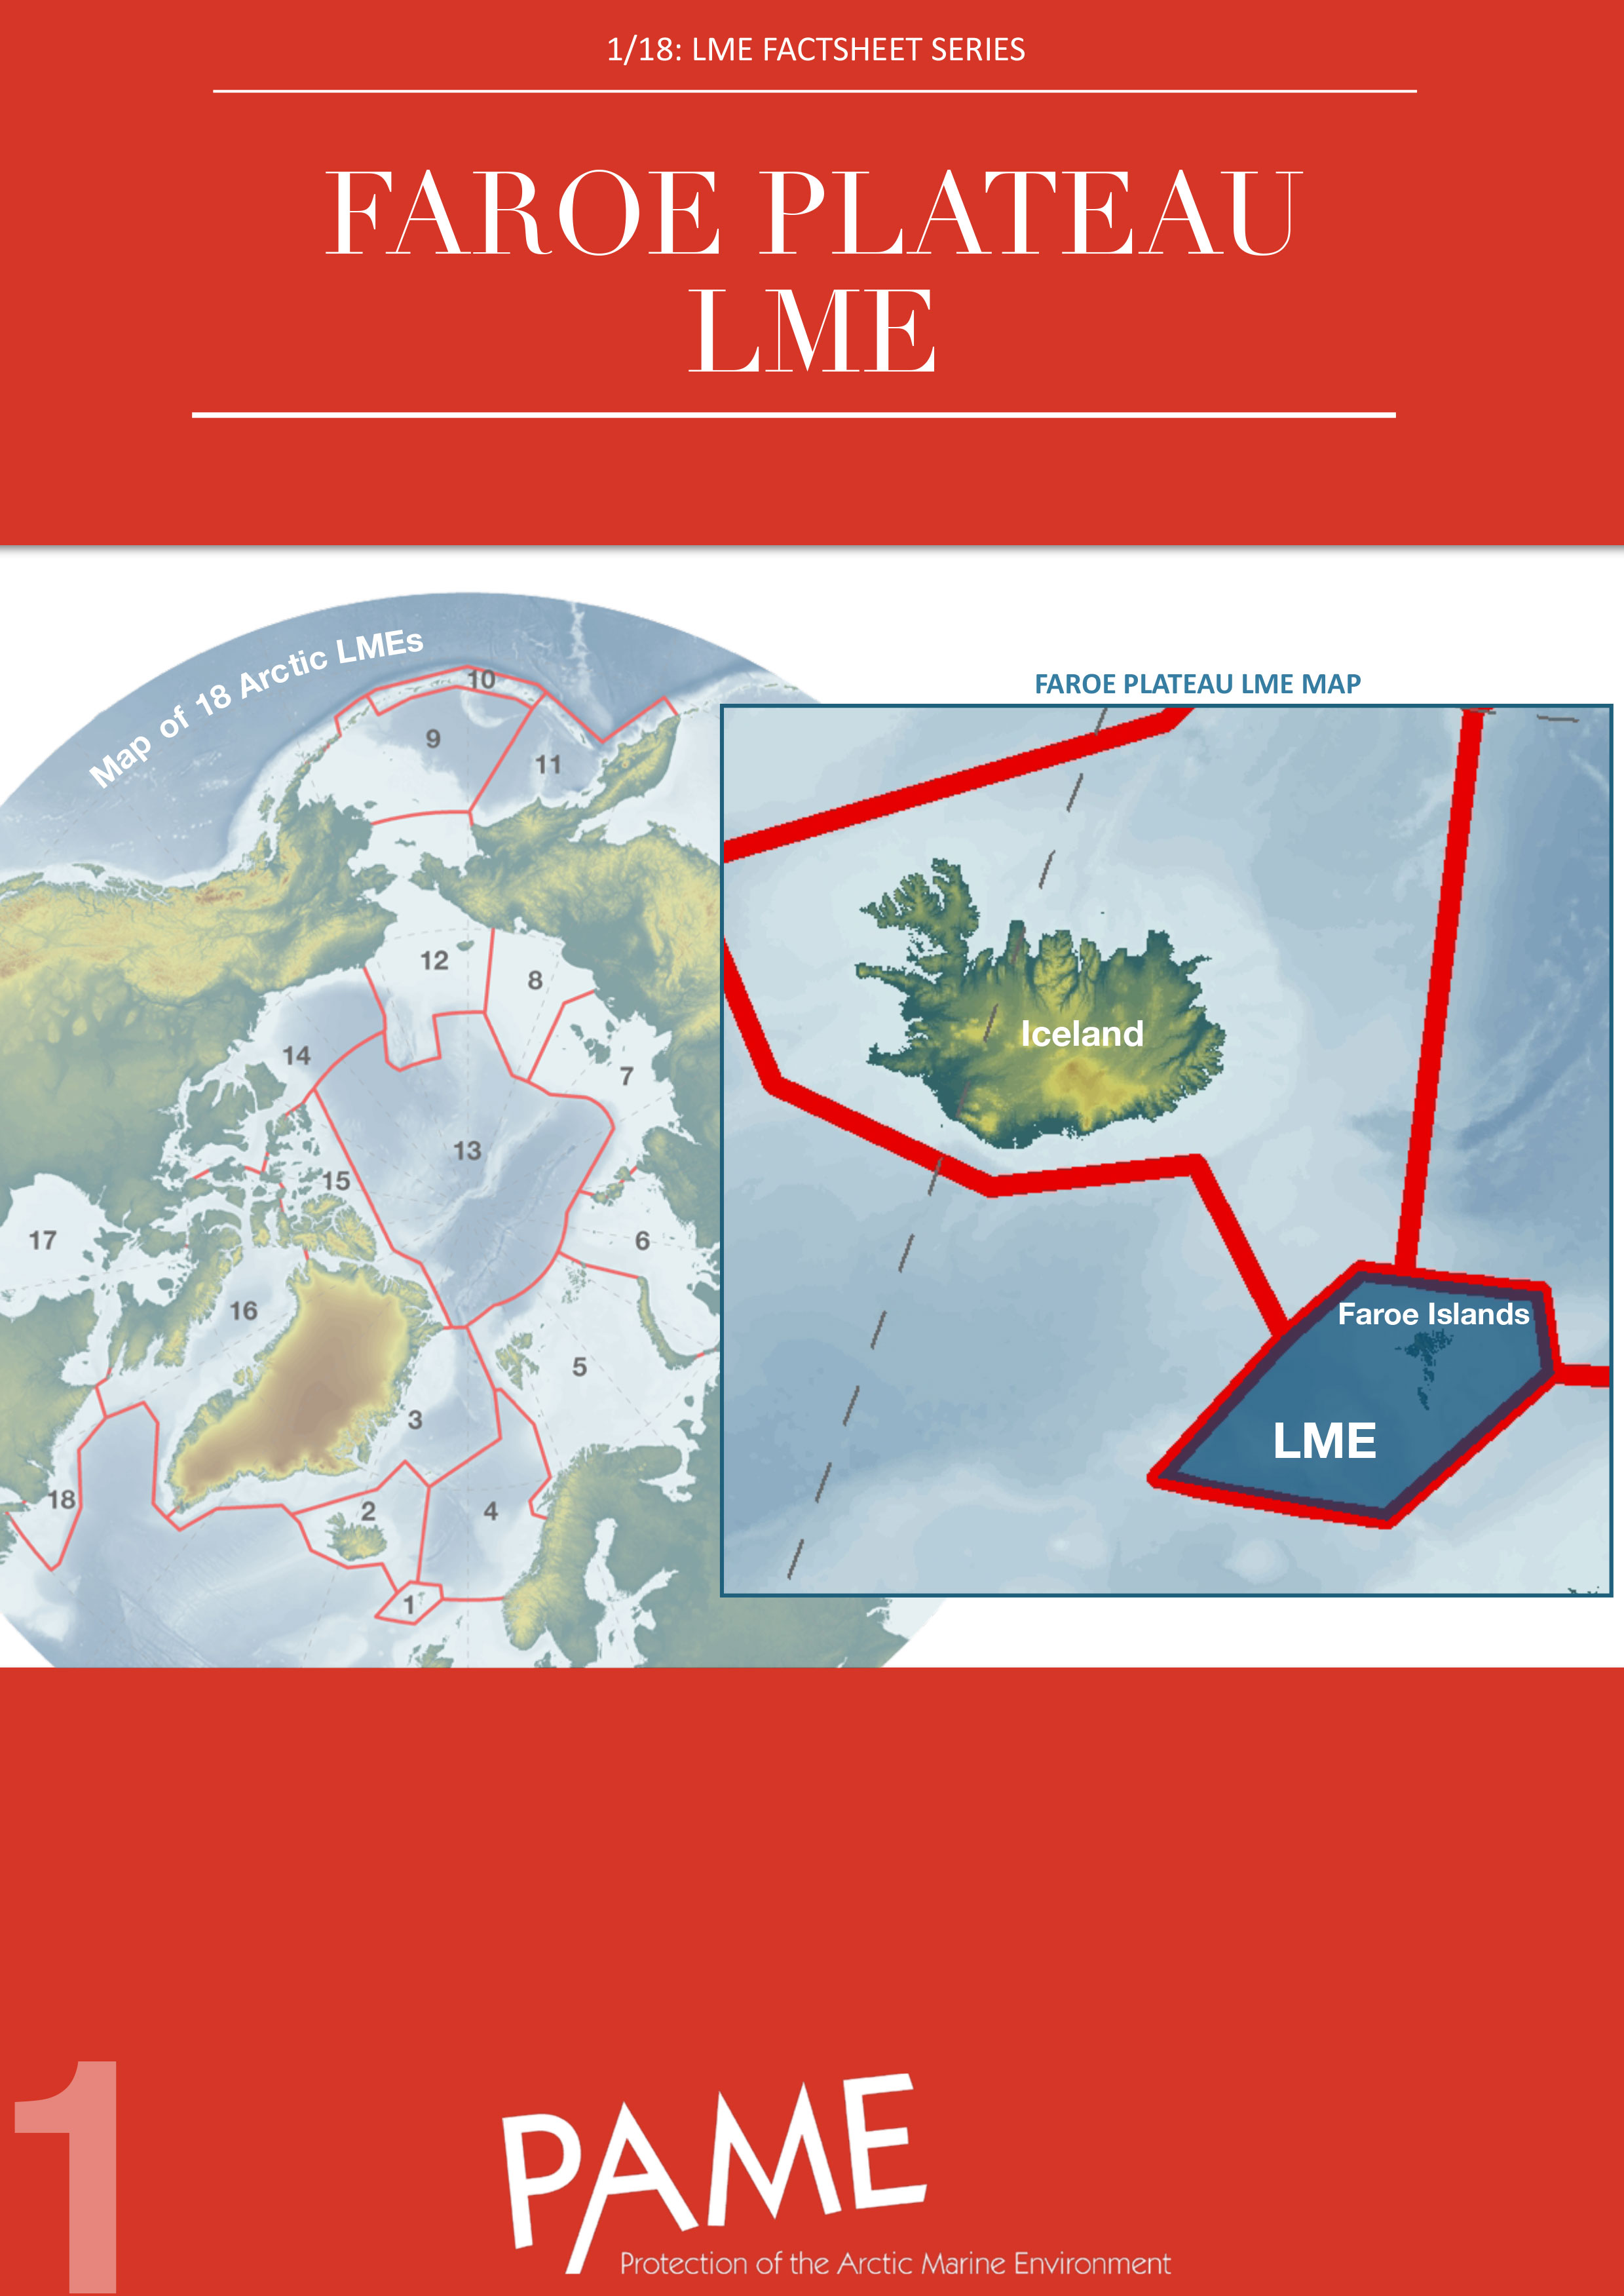 1 Faroe Islands LME